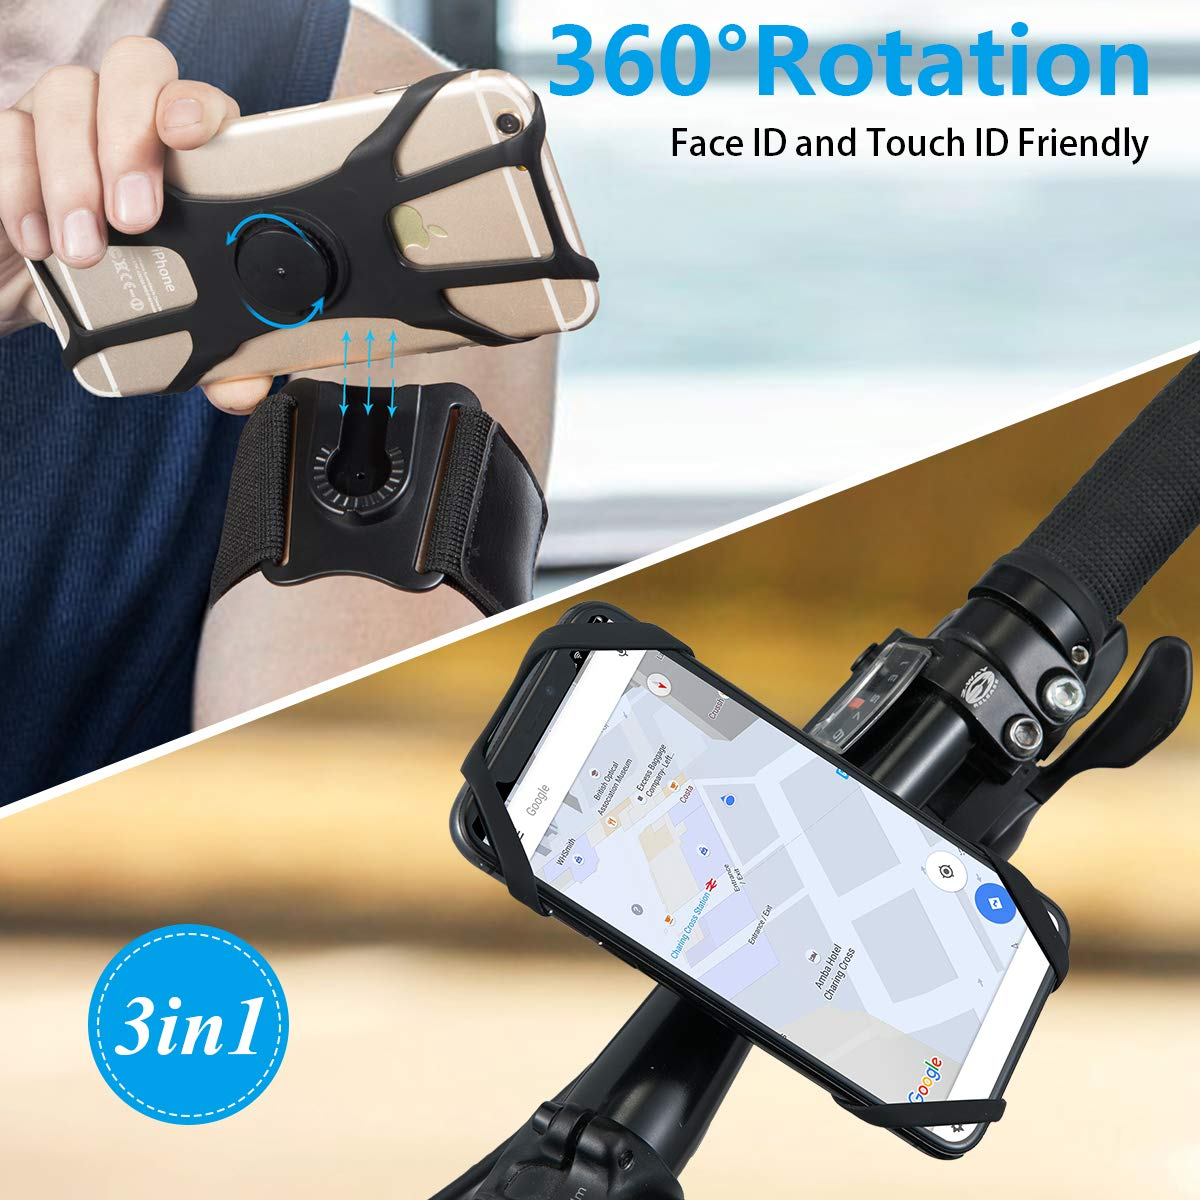 CW COOLWOW Running Armband Bike Phone Holder for iPhone X, Xs, Xs Max, Xr, 8, 7, 6 Plus, Samsung Galaxy S9, S8, S7, S6, A8, 360° Rotatable& Detachable Armband for Running, Walking, Hiking, Biking by CW COOLWOW